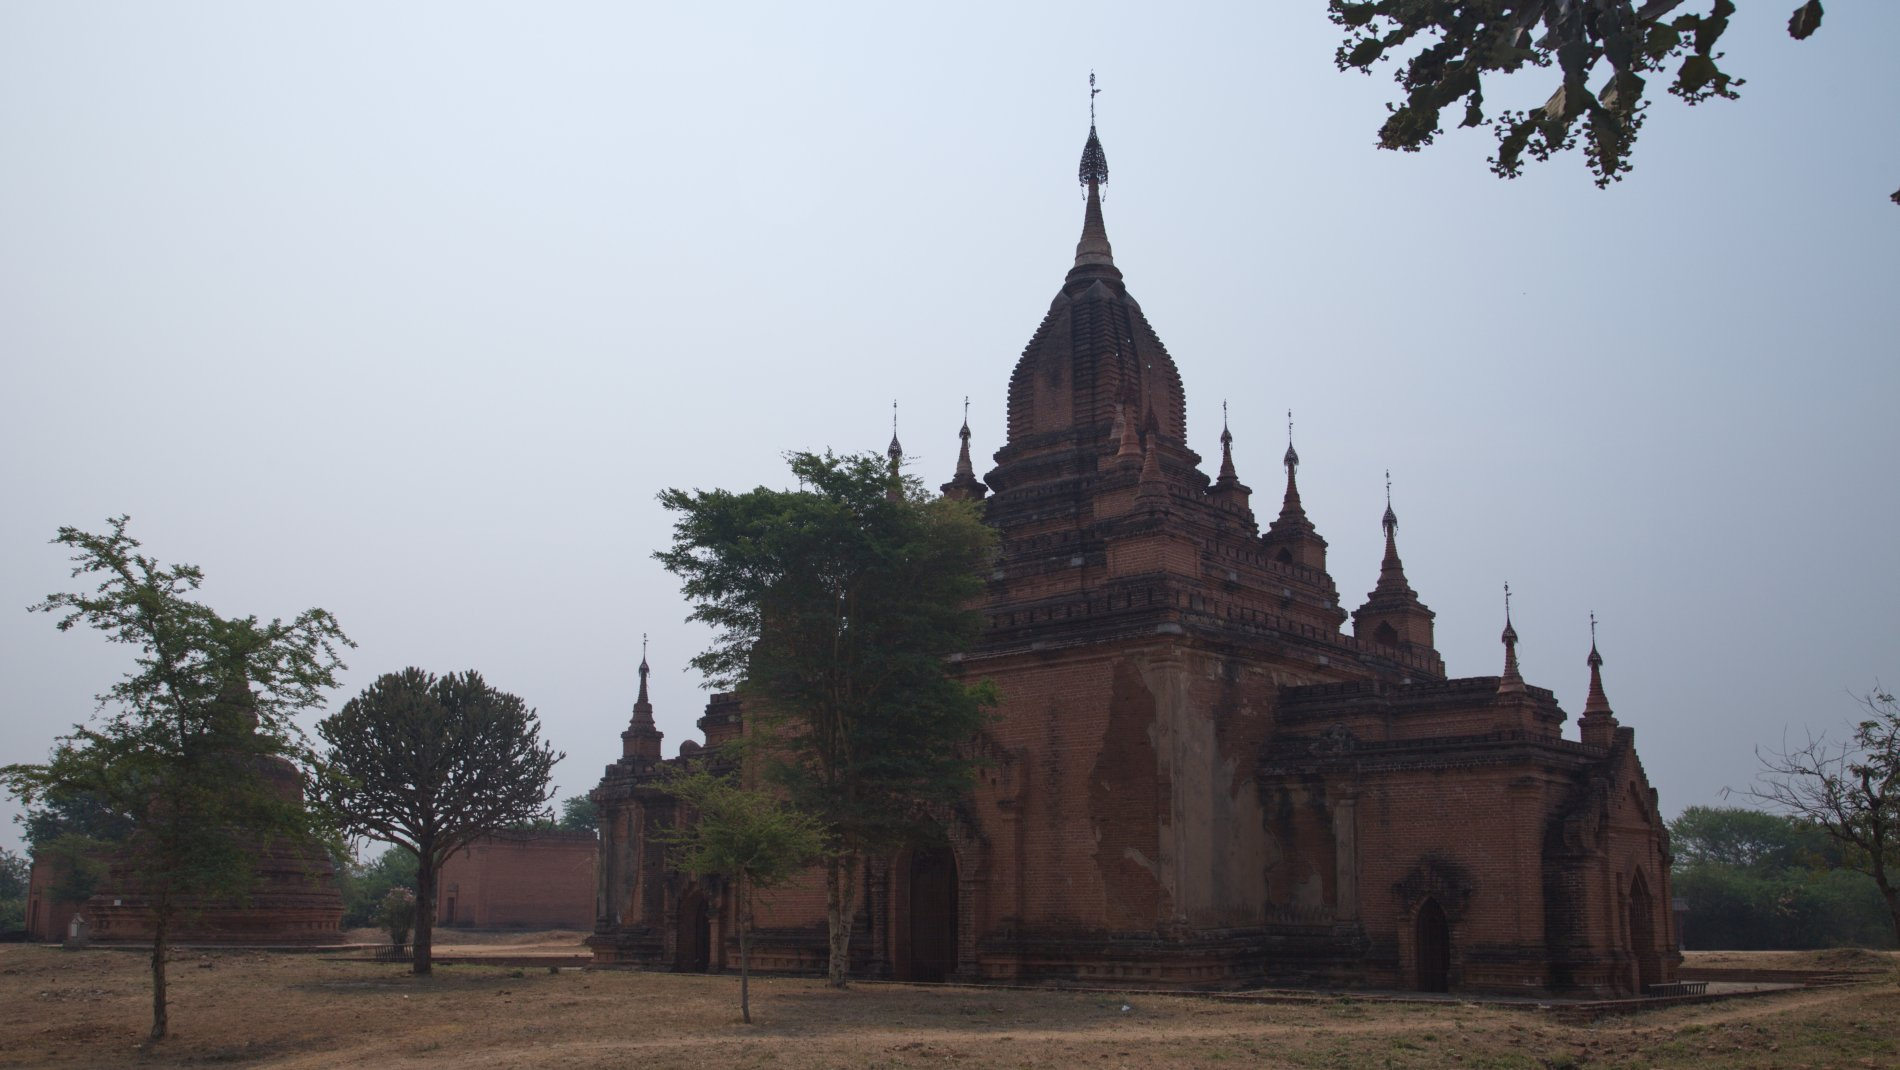 Bagan_113.jpg-commment